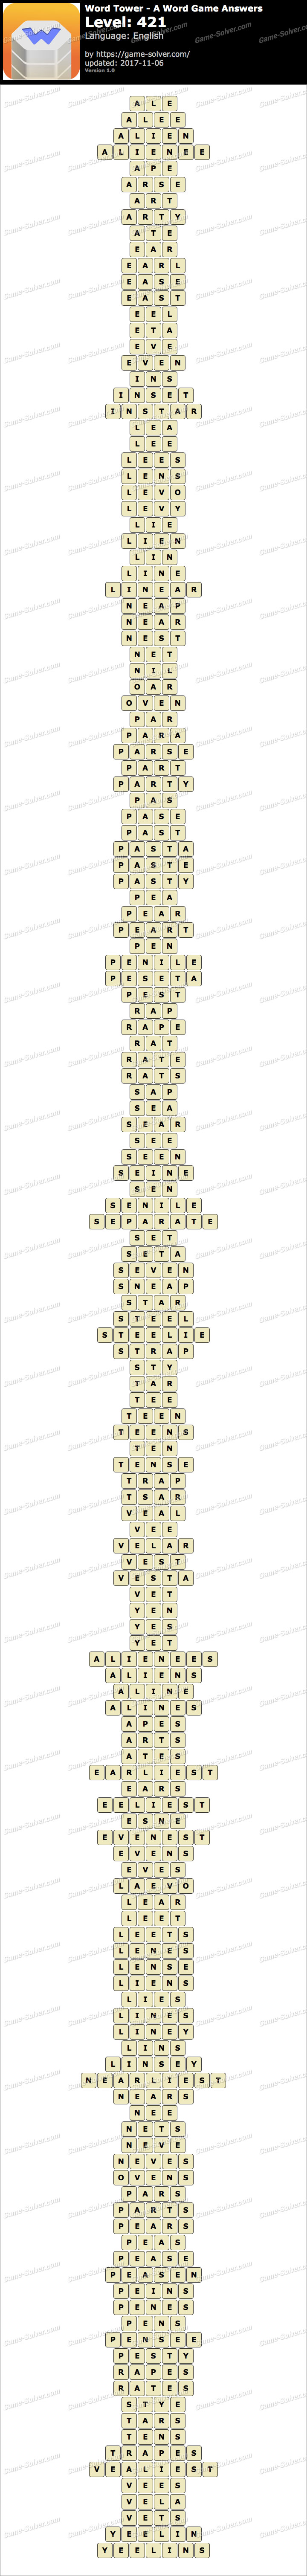 Word Tower Level 421 Answers